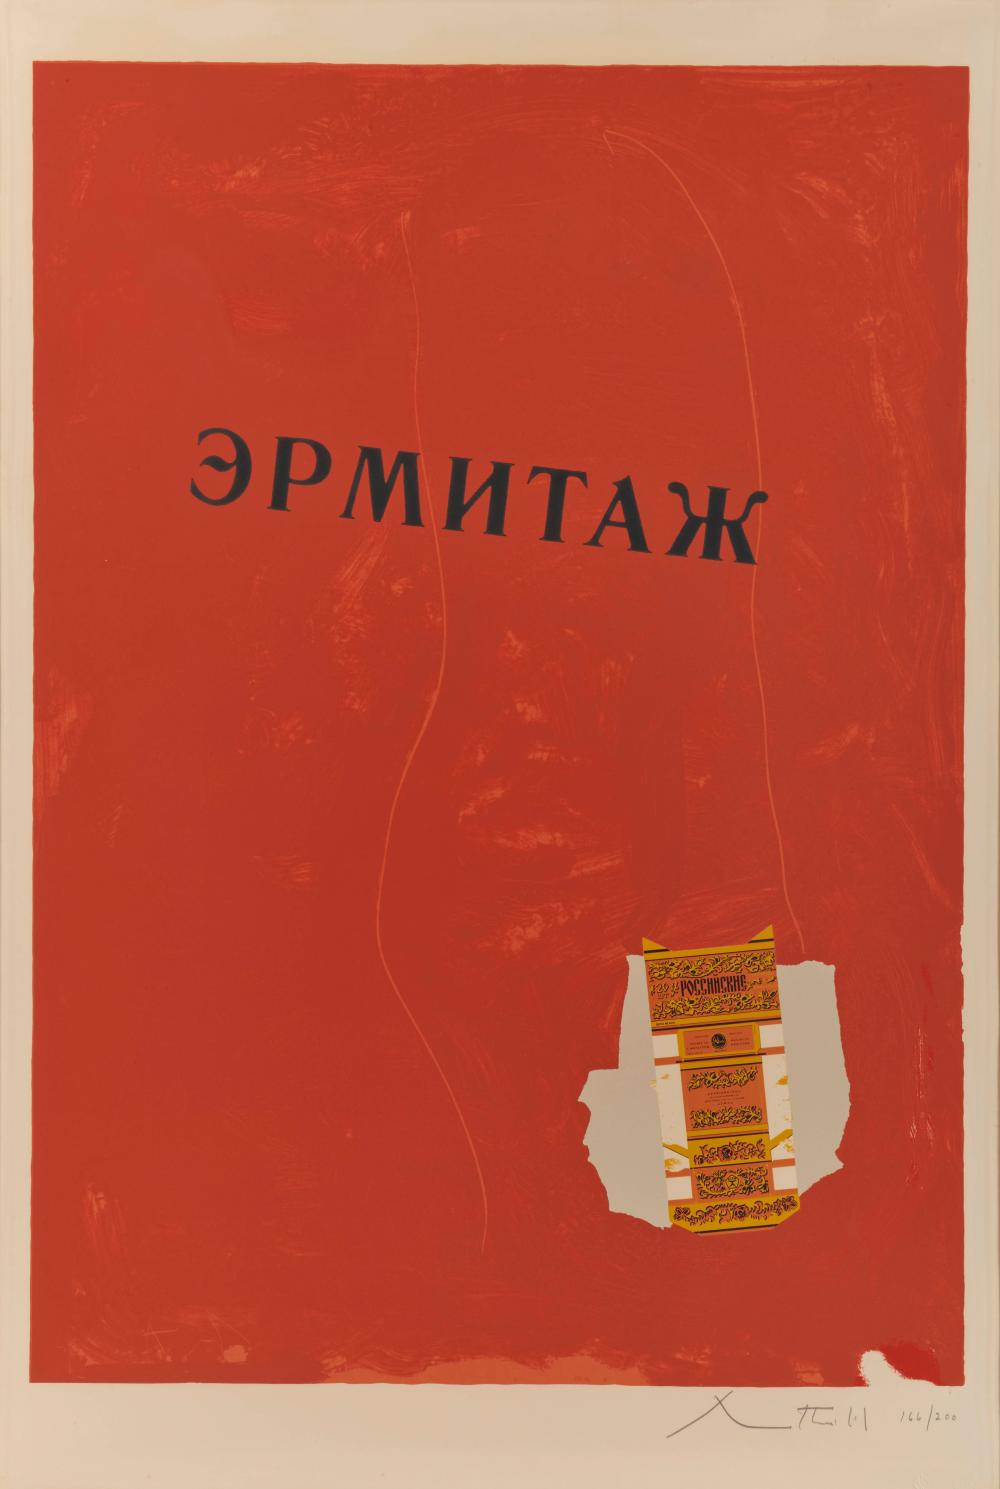 ROBERT BURNS MOTHERWELL, (American, 1915-1991), Hermitage, 1975, lithograph and screenprint, sight: 45 1/2 x 31 in., frame: 54 x 39 1/2 in.